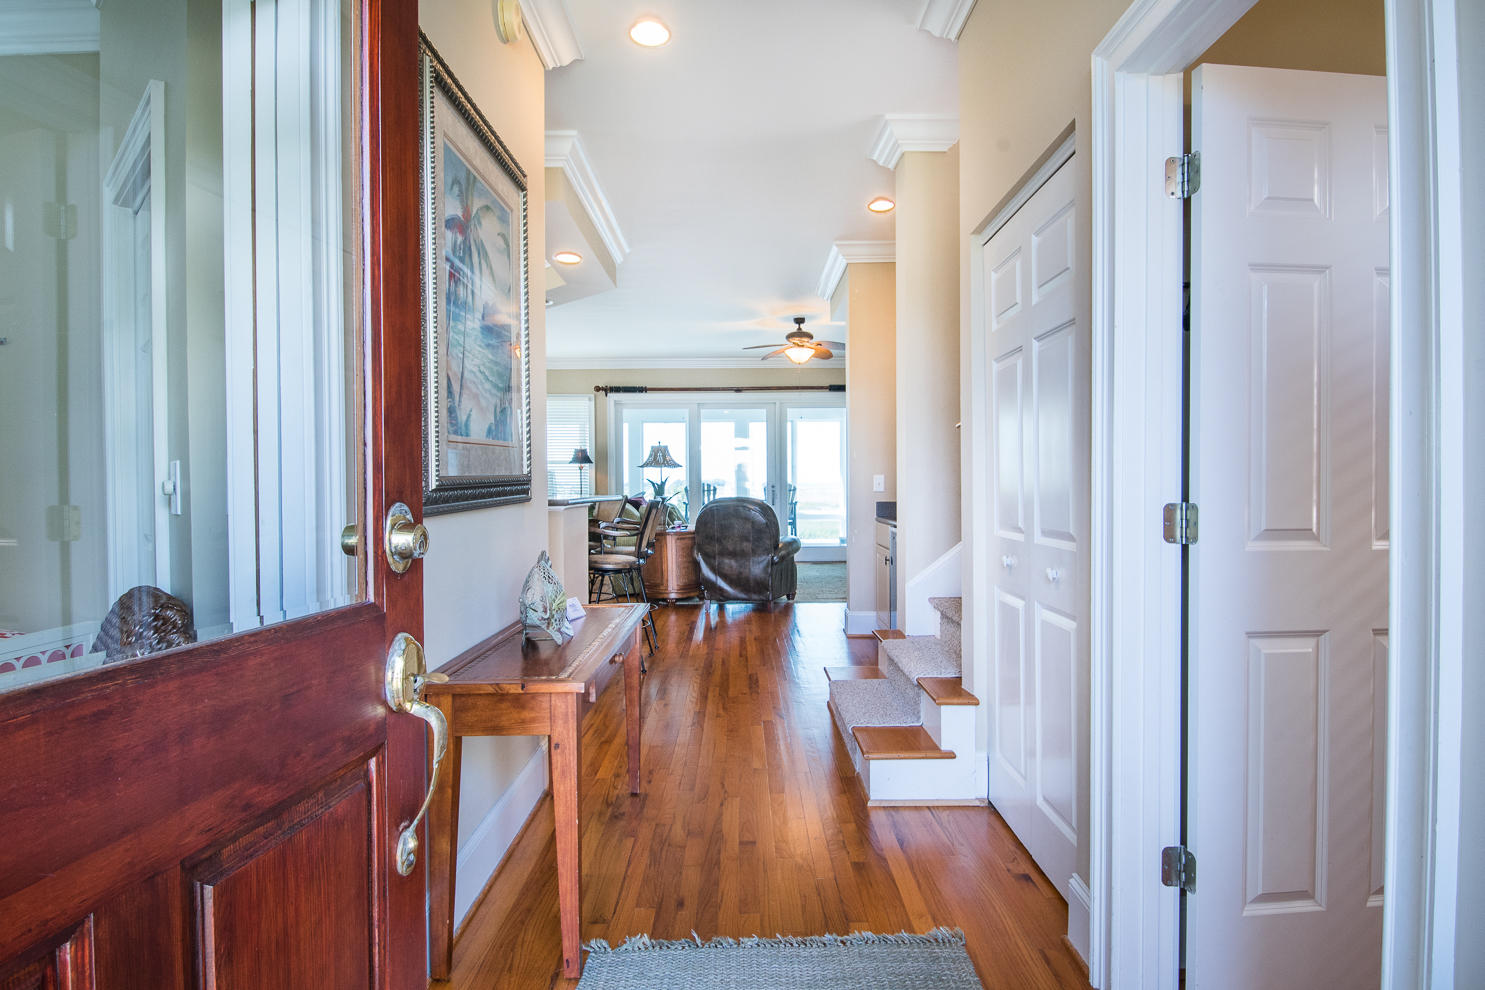 Tolers Cove Homes For Sale - B-4 & B-5 Tolers Cove Marina 70ft + Home, Mount Pleasant, SC - 19